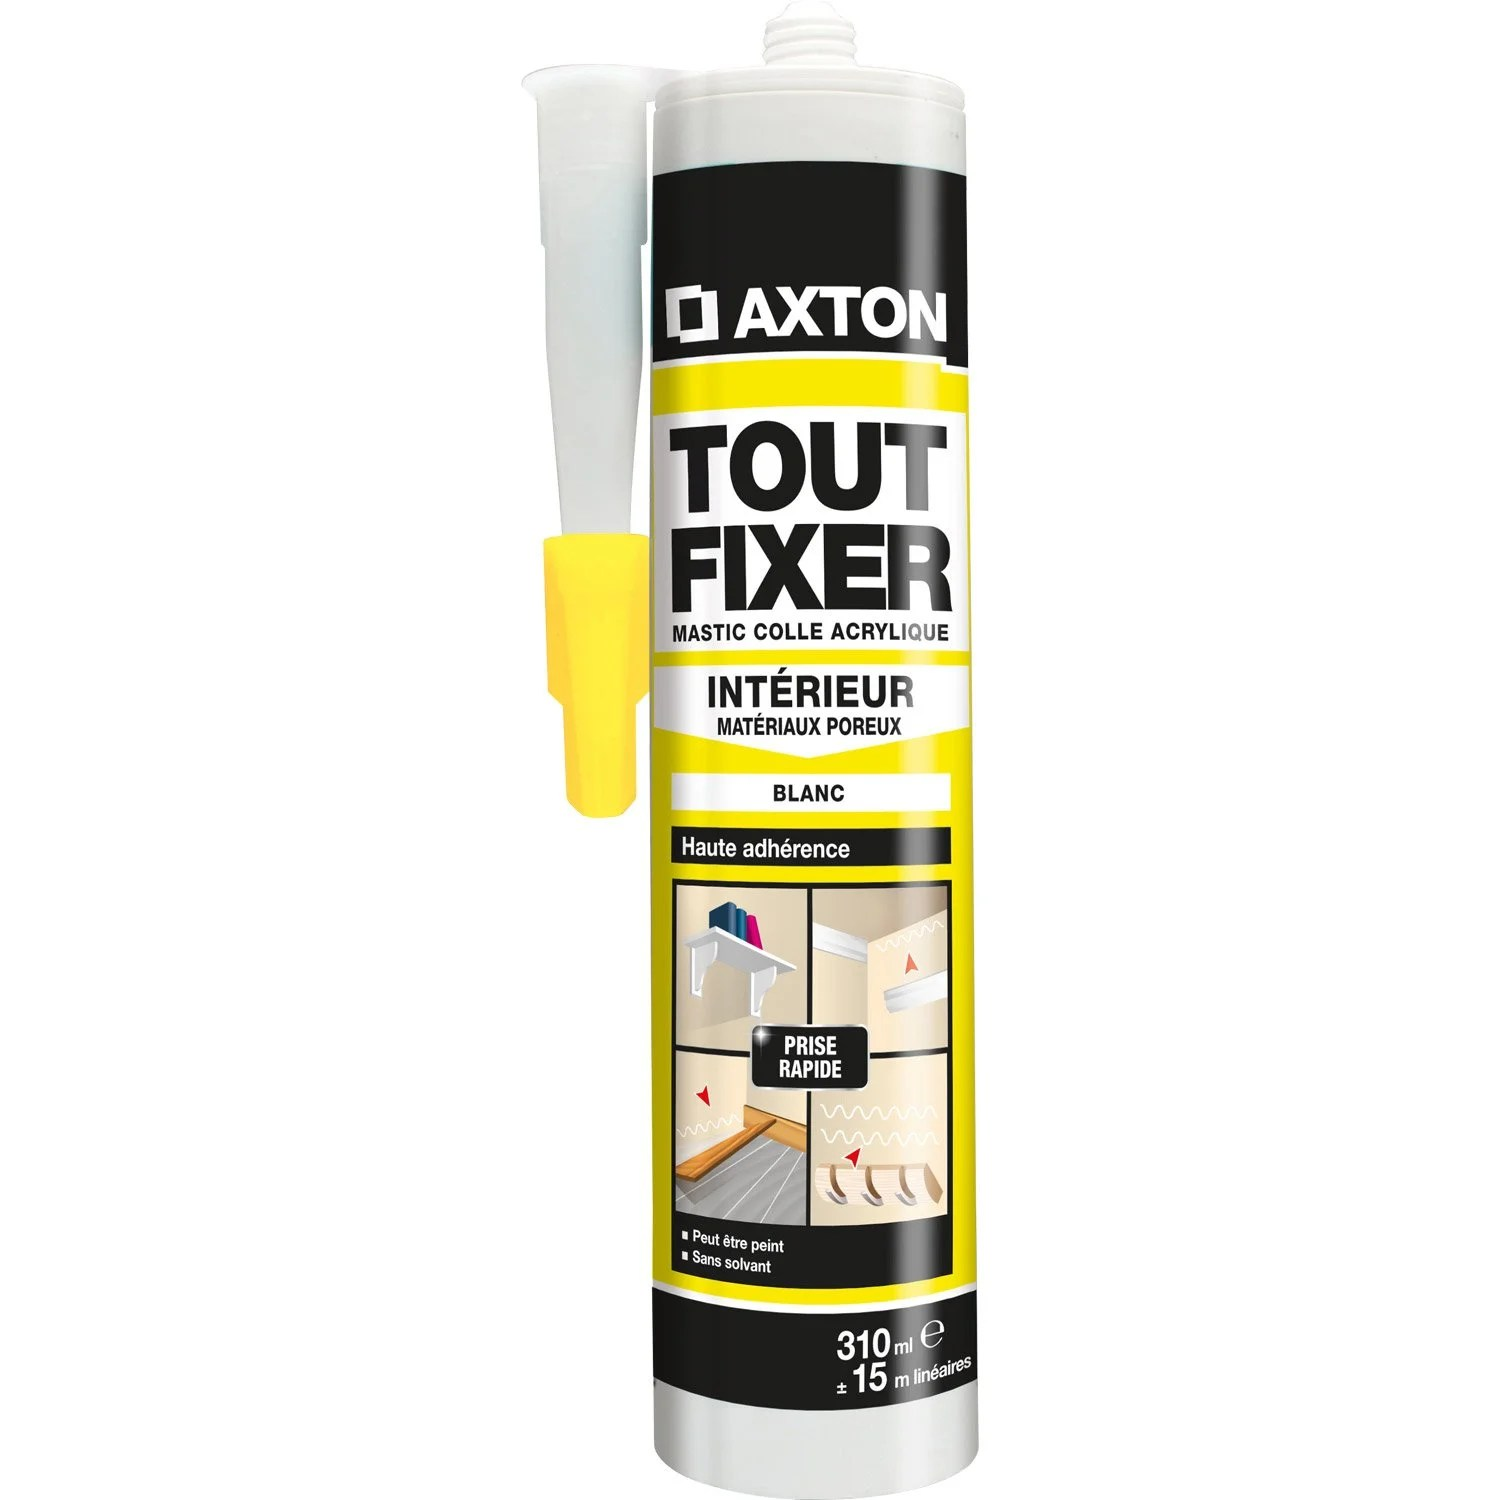 Eclairage Exterieur Mural Monsieur Bricolage Colle Mastic Multi Supports Axton Tout Fixer Blanc